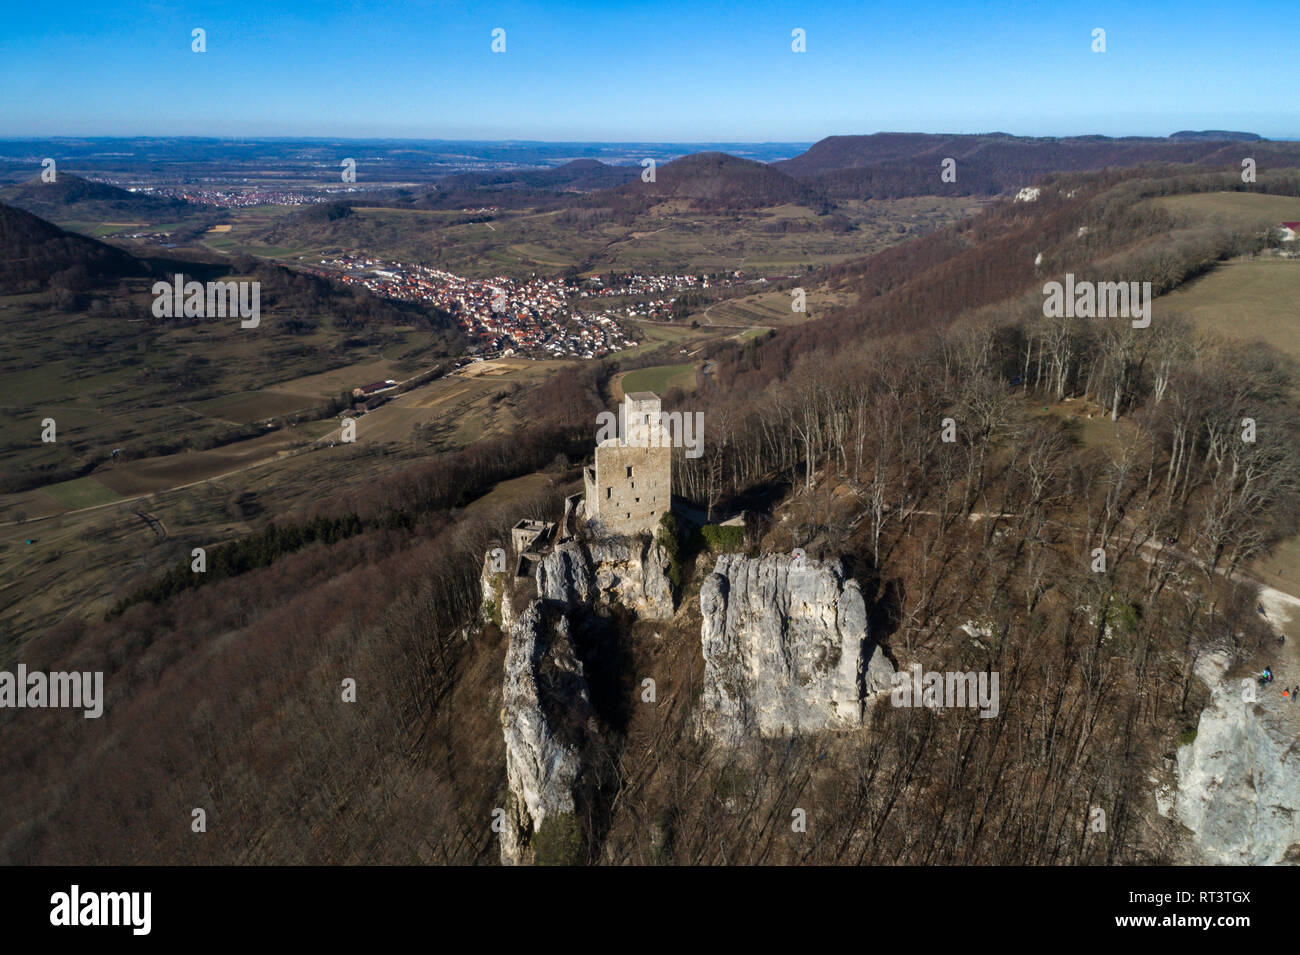 Scenic Swabian Alb with Reussenstein Castle, Neidlingen, Germany - Stock Image